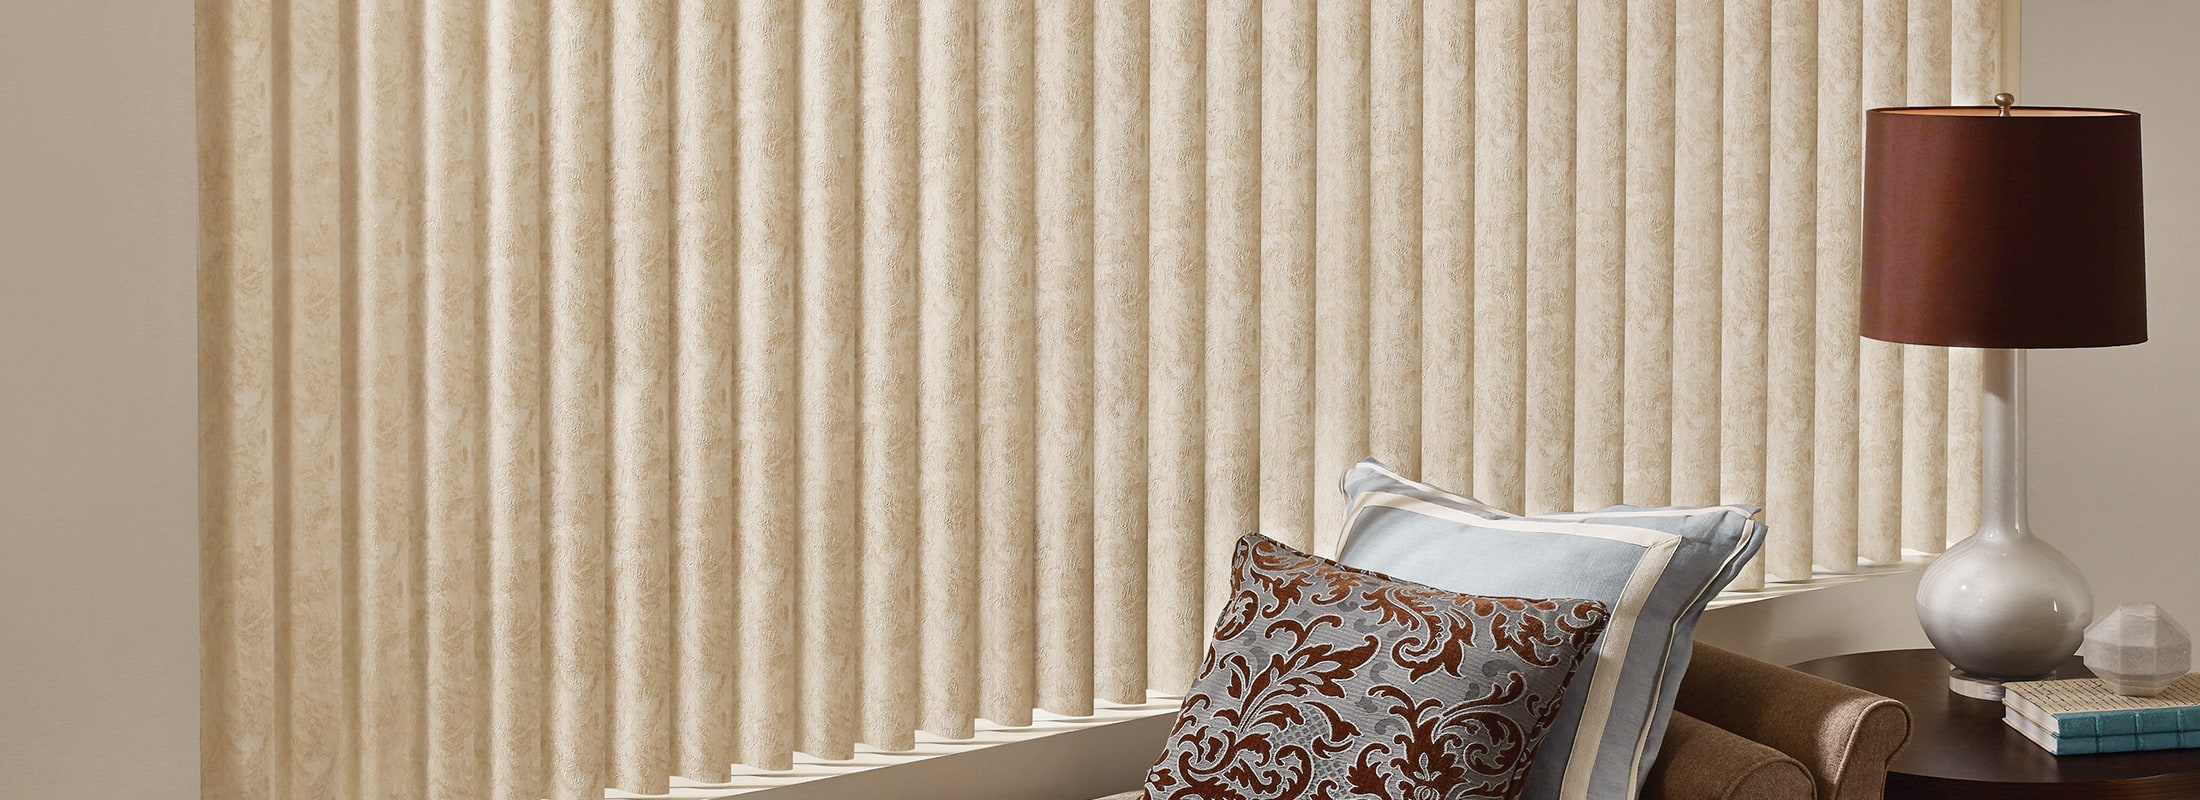 Fabric Vertical Blinds In Cabriolet Vanilla Cadence